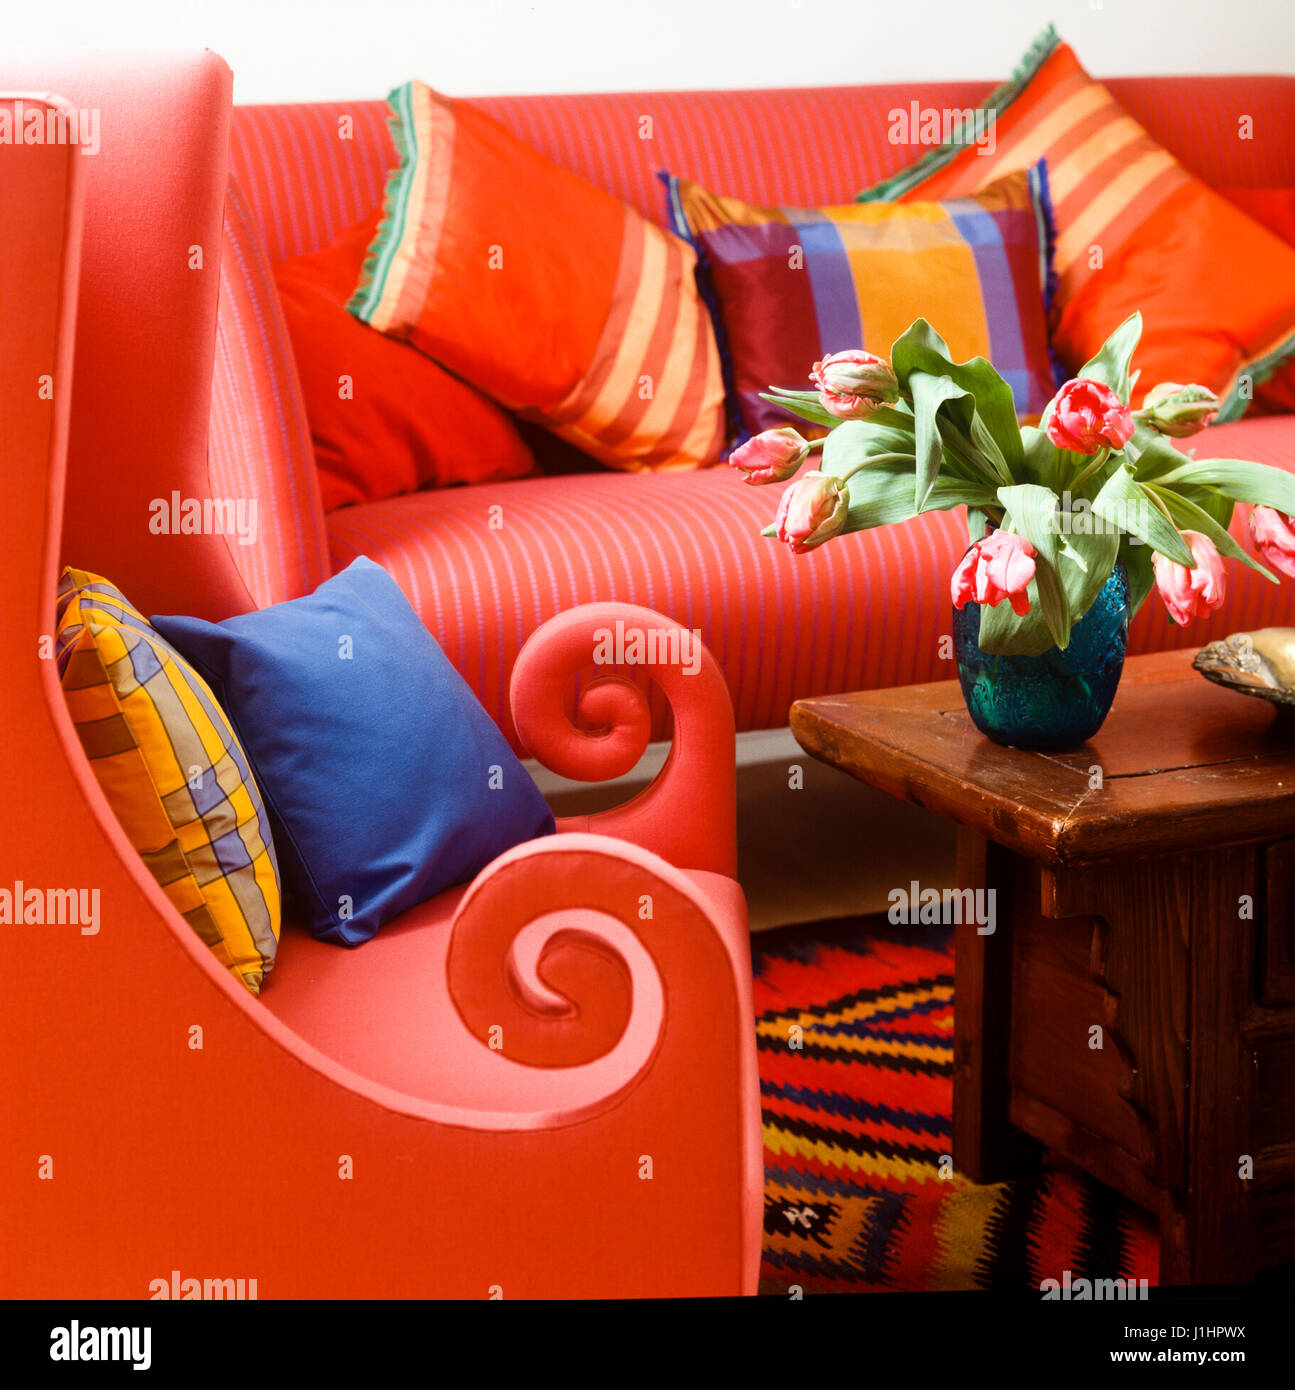 Vibrant furniture. - Stock Image